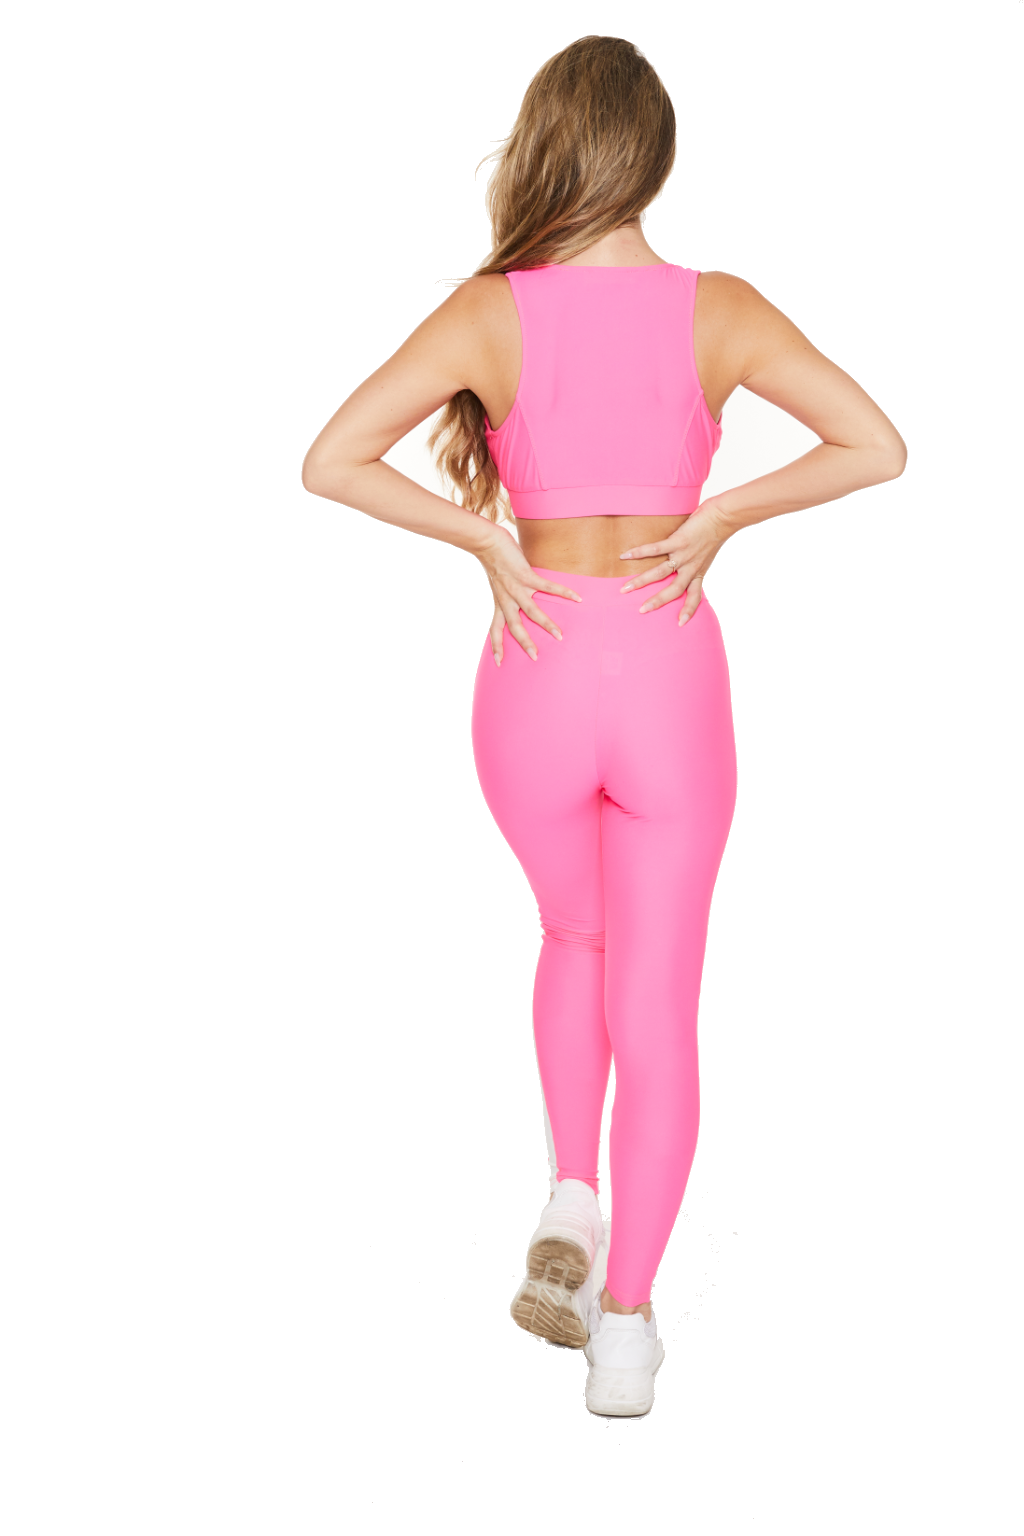 ACTIVE BARBIE - www.prettyboutique.com